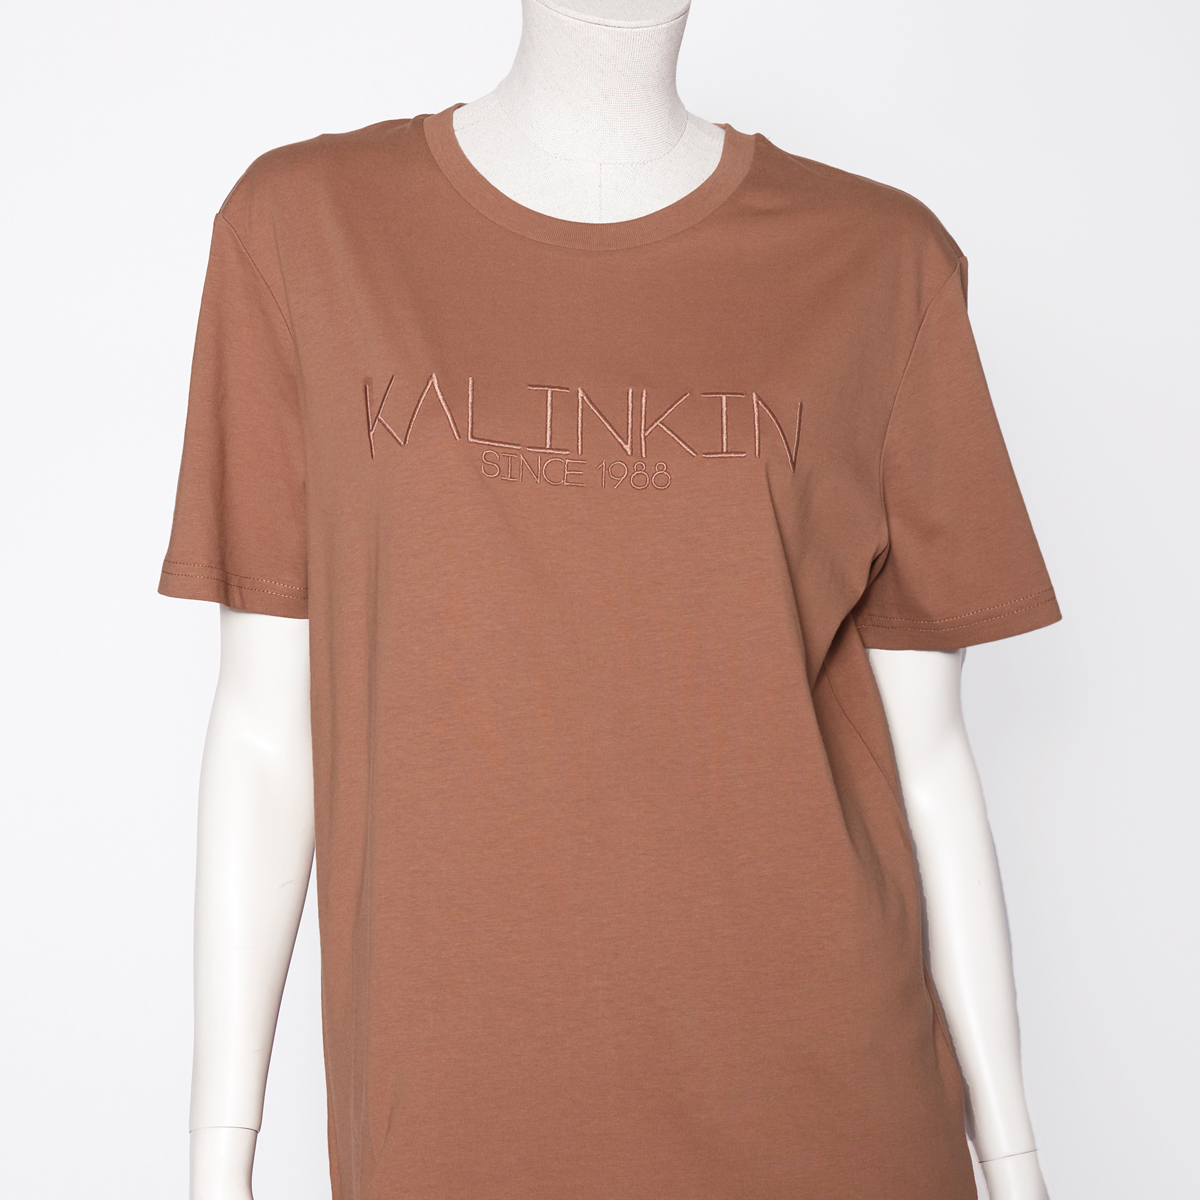 SINCE 1988 T-SHIRT, BROWN